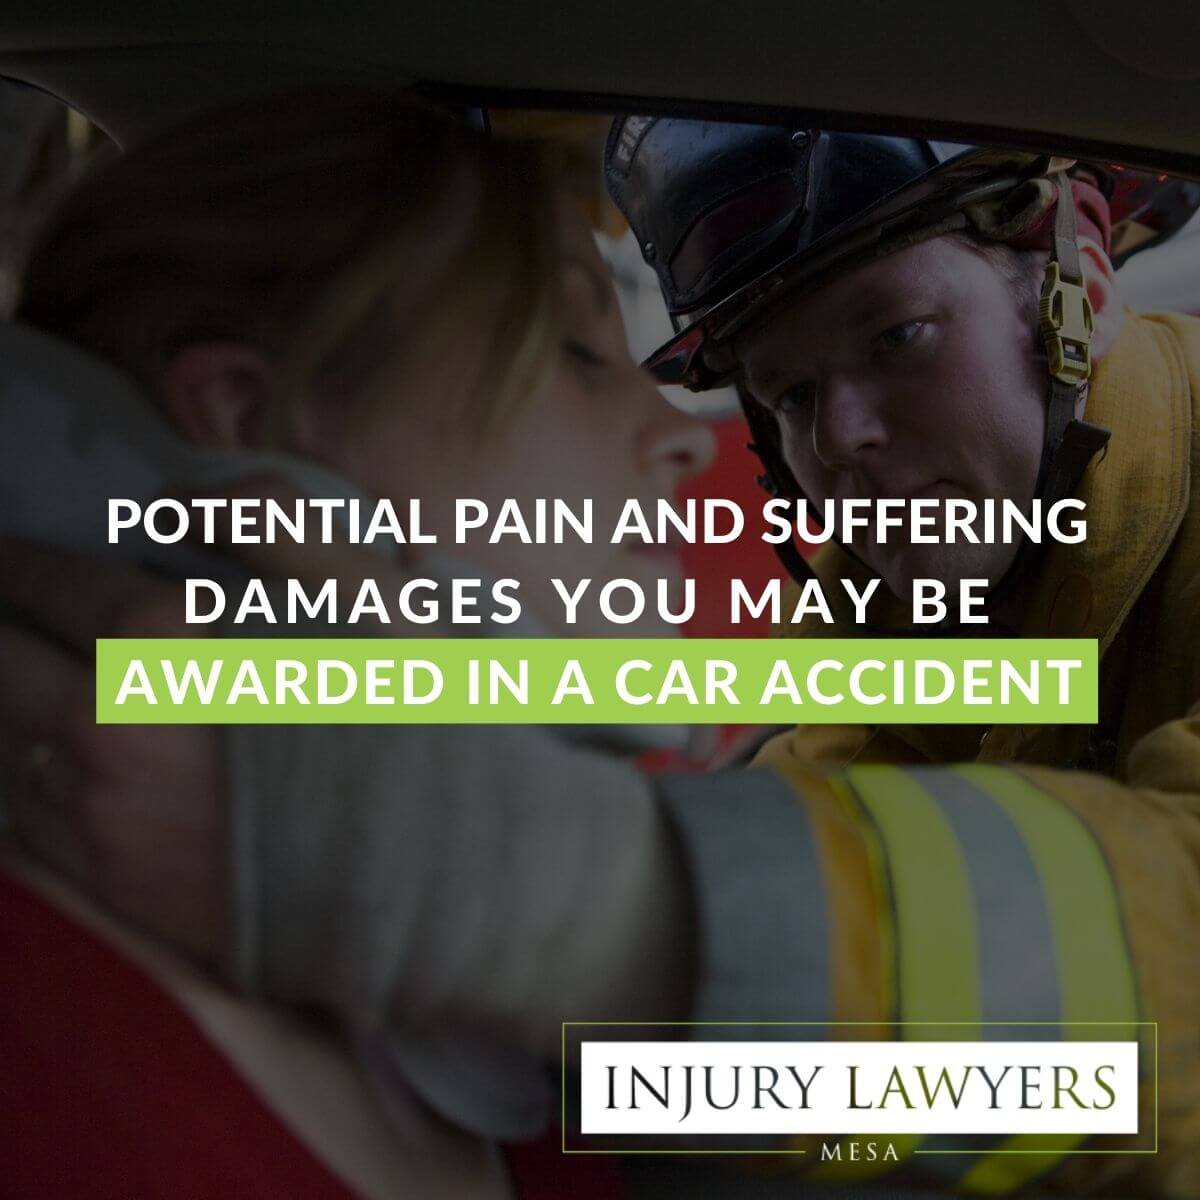 Potential Pain and Suffering Damages You May be Awarded in a Car Accident